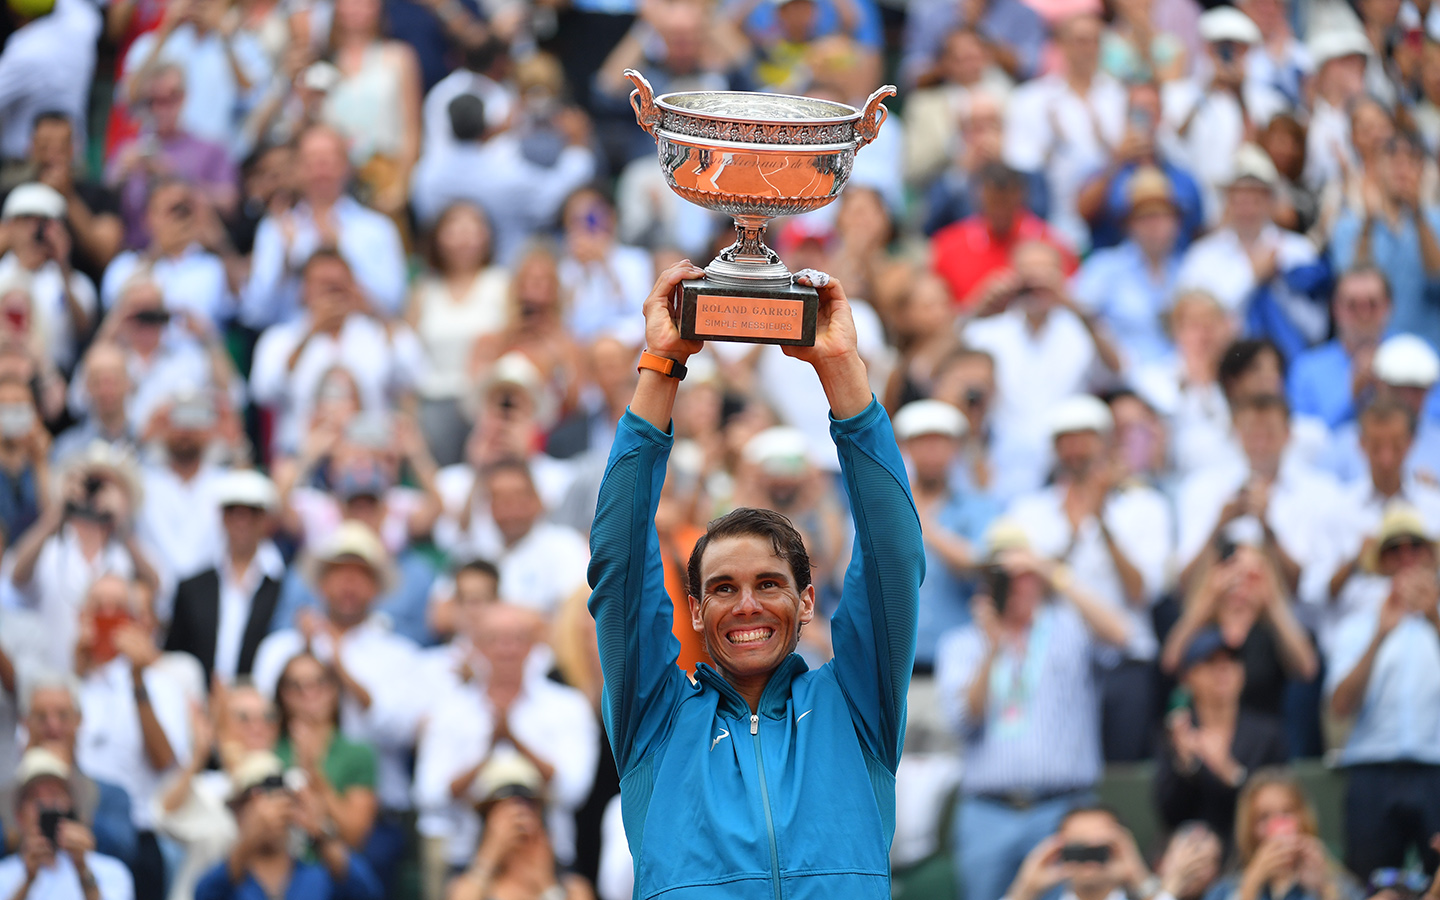 The King of Roland Garros